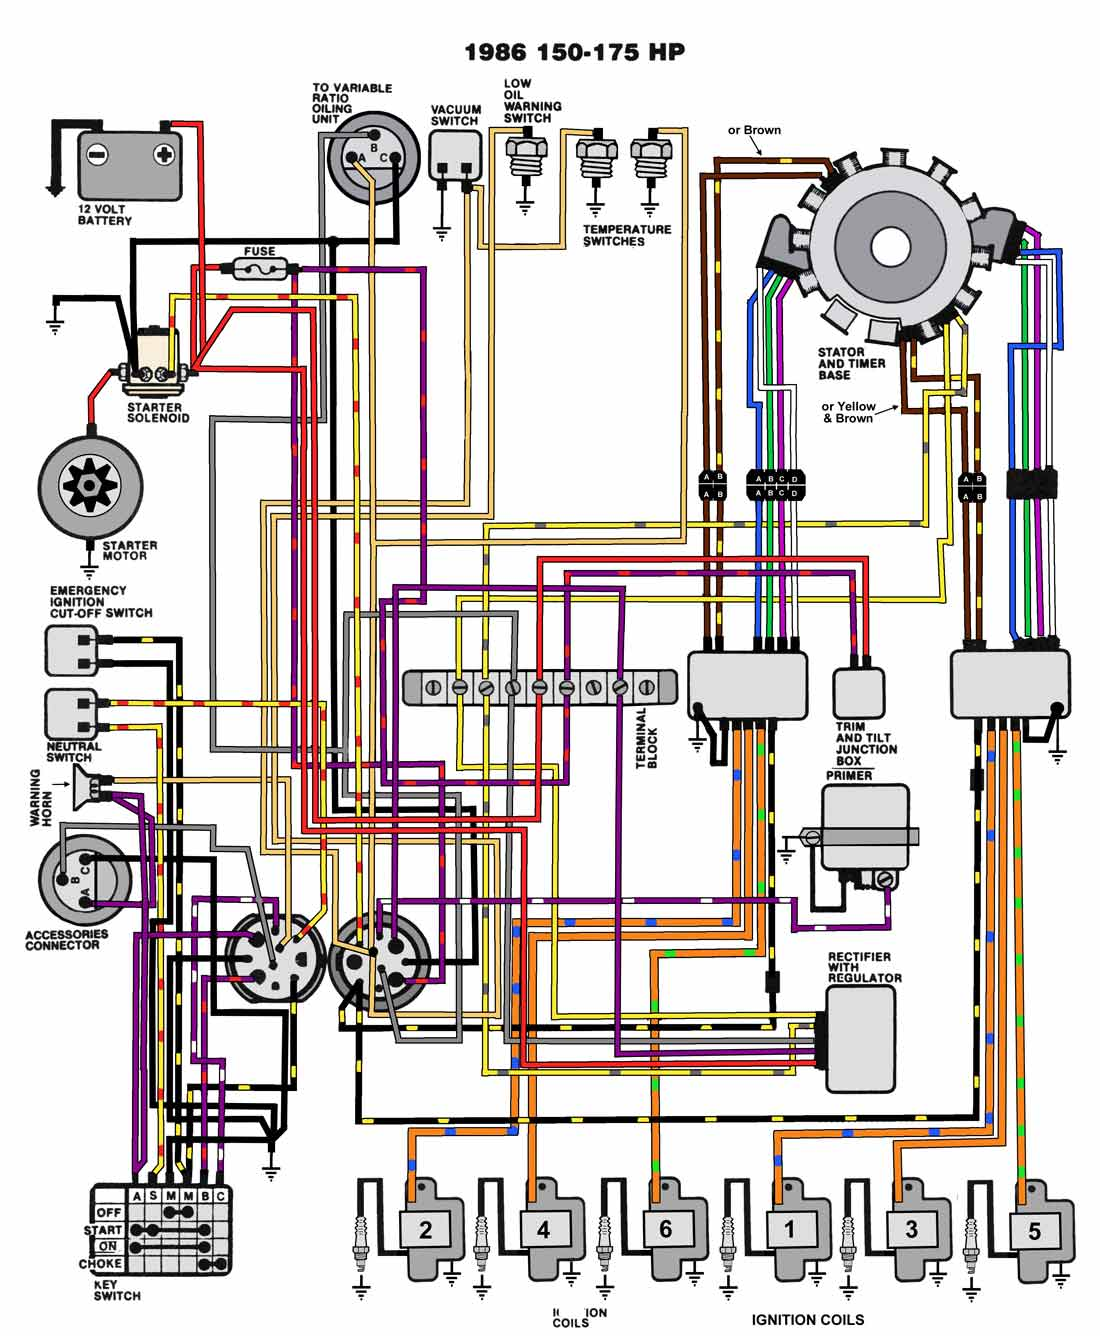 hight resolution of evinrude 150 wiring diagram wiring diagram inside evinrude e tec outboard 150 wiring